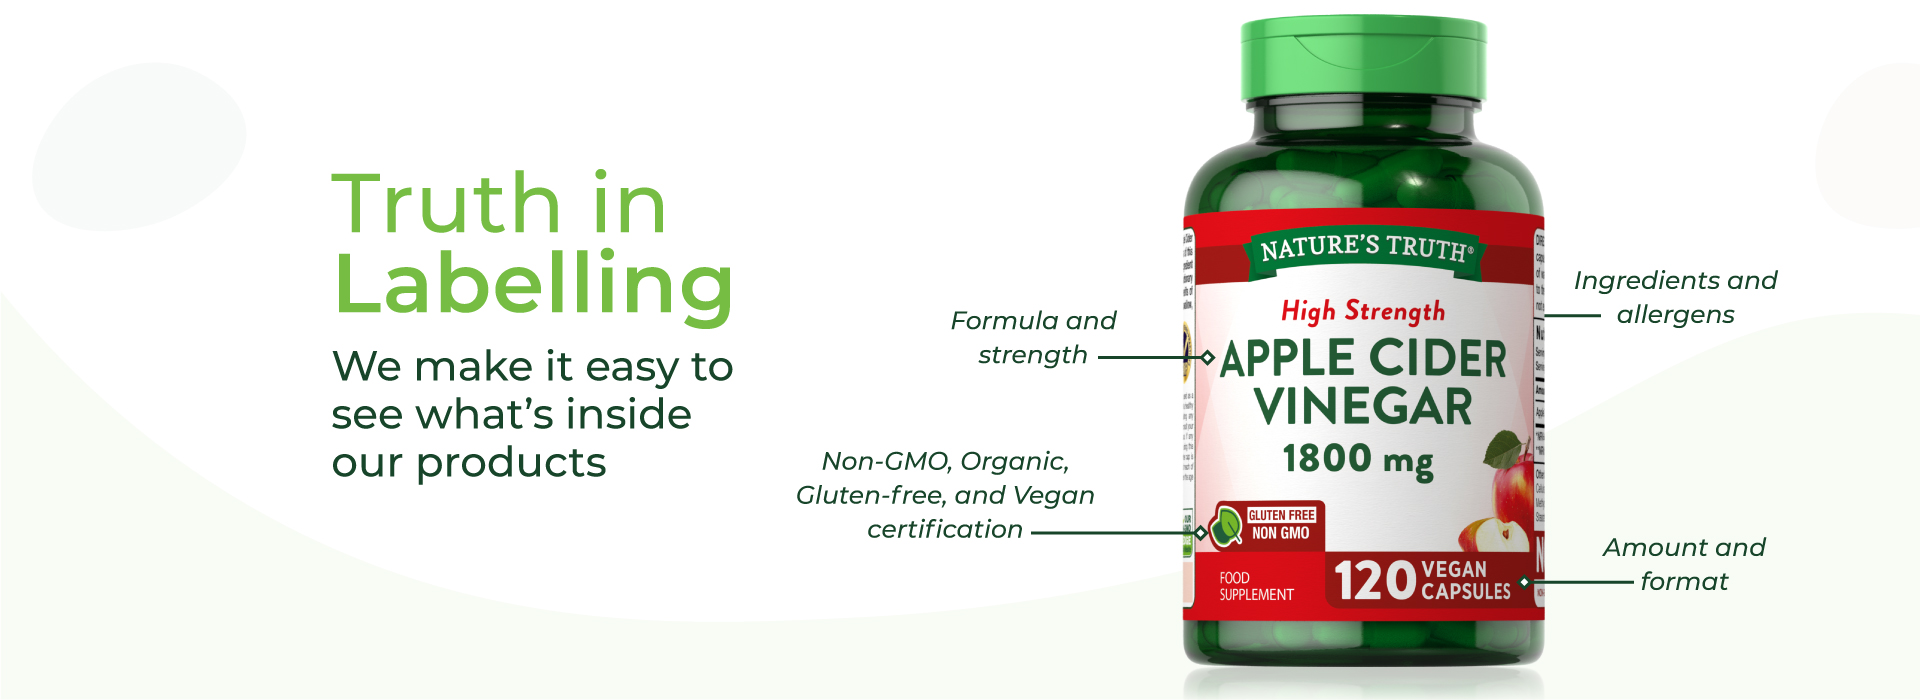 Truth in Labelling. We make it easy to see what's inside our products.